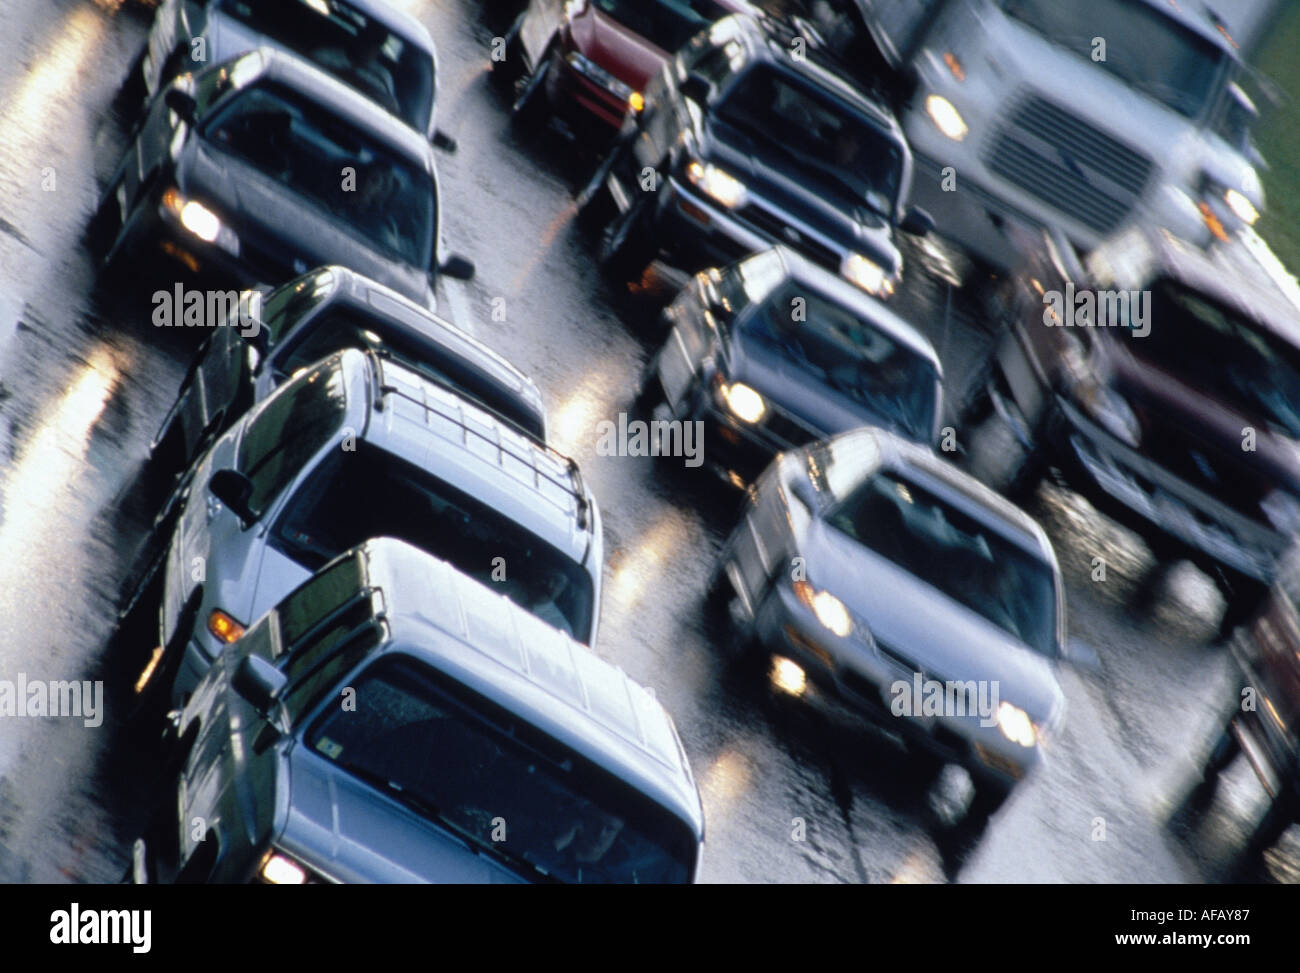 Cars in rush hour traffic in the rain - Stock Image